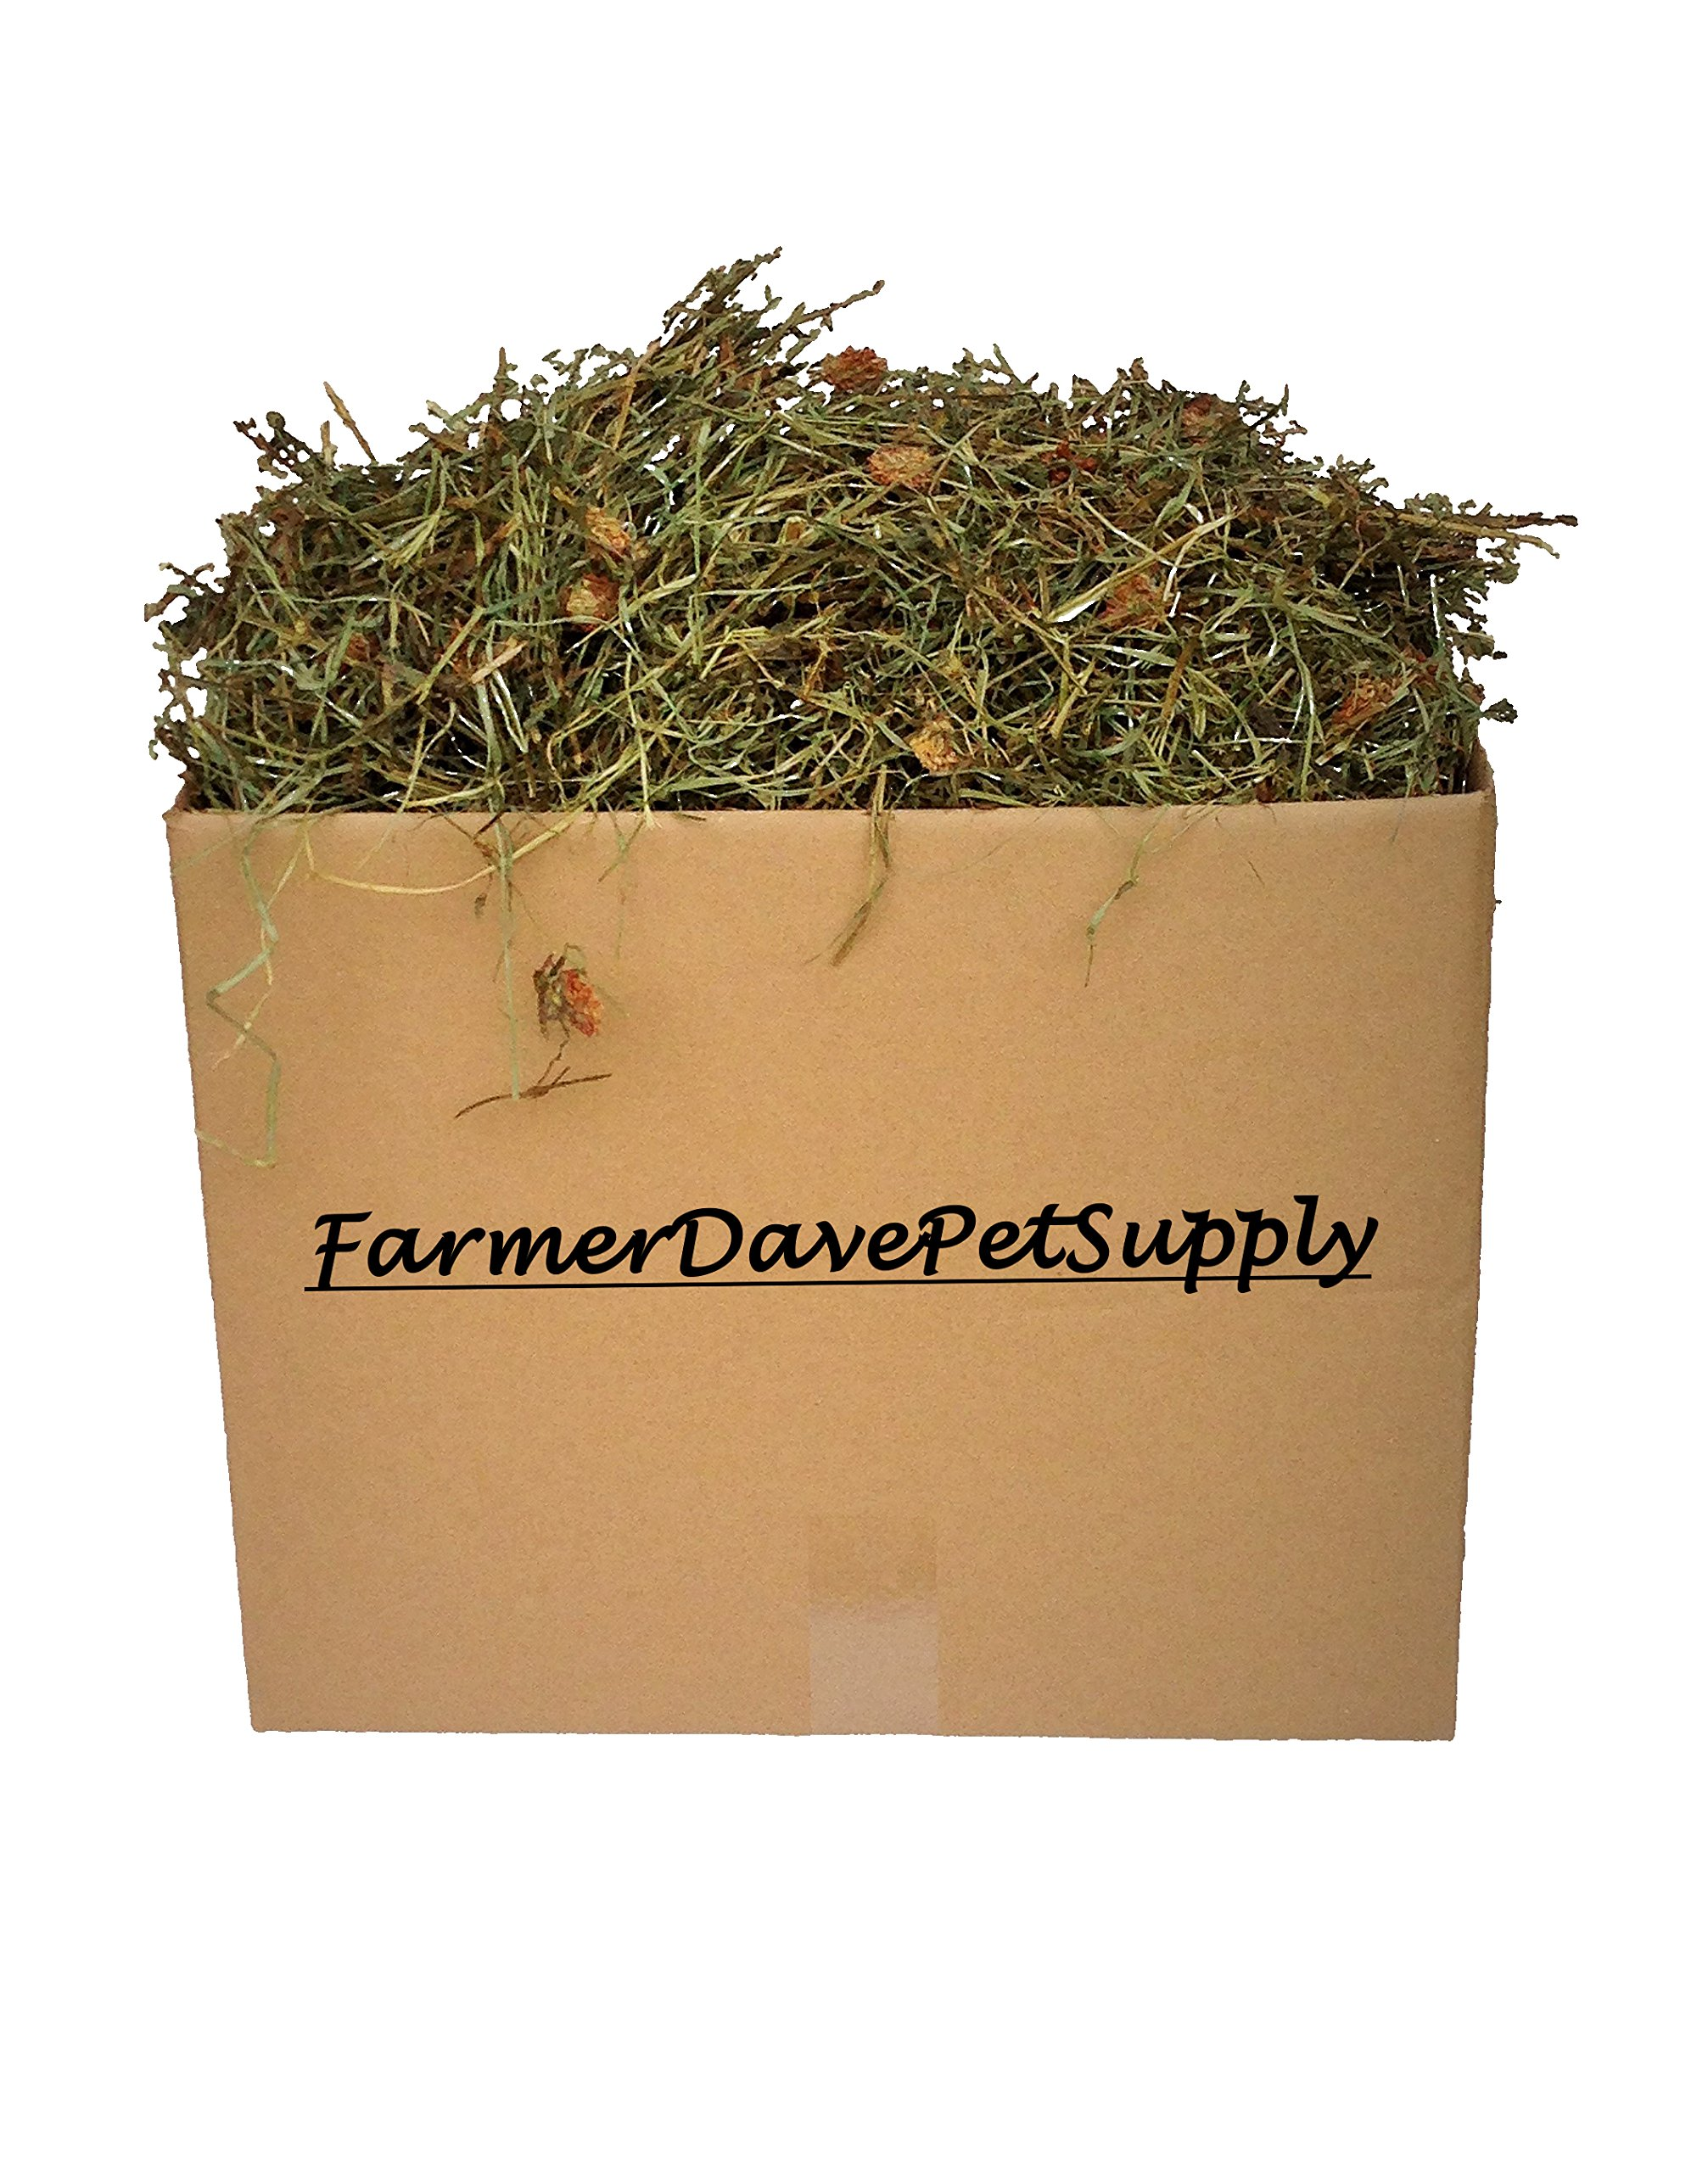 FarmerDavePetSupply 15 Lb. Premium 2nd Cut Timothy Hay With Clover, Bunny, and Small Animal Pet HAY-IN-A-BOX by FarmerDavePetSupply (Image #1)